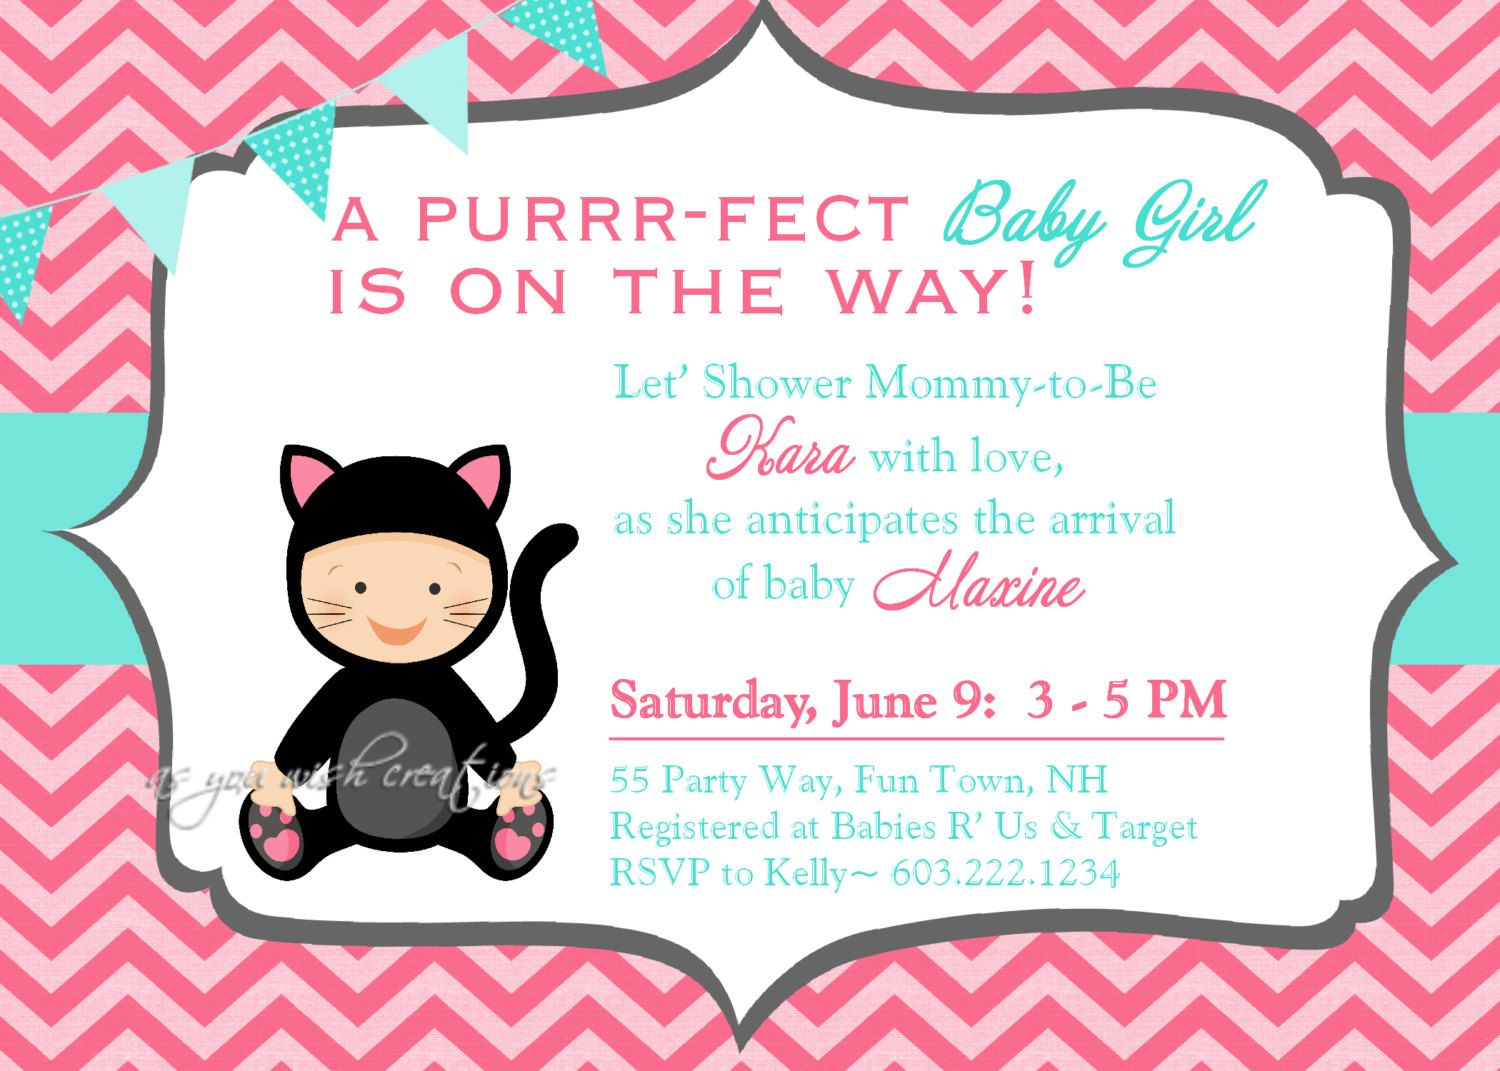 Cat Kitty Baby Shower Invitation Chevron By Asyouwishcreations4u 14 00 Cat Baby Shower Cat Baby Shower Invitations Baby Shower Invites For Girl